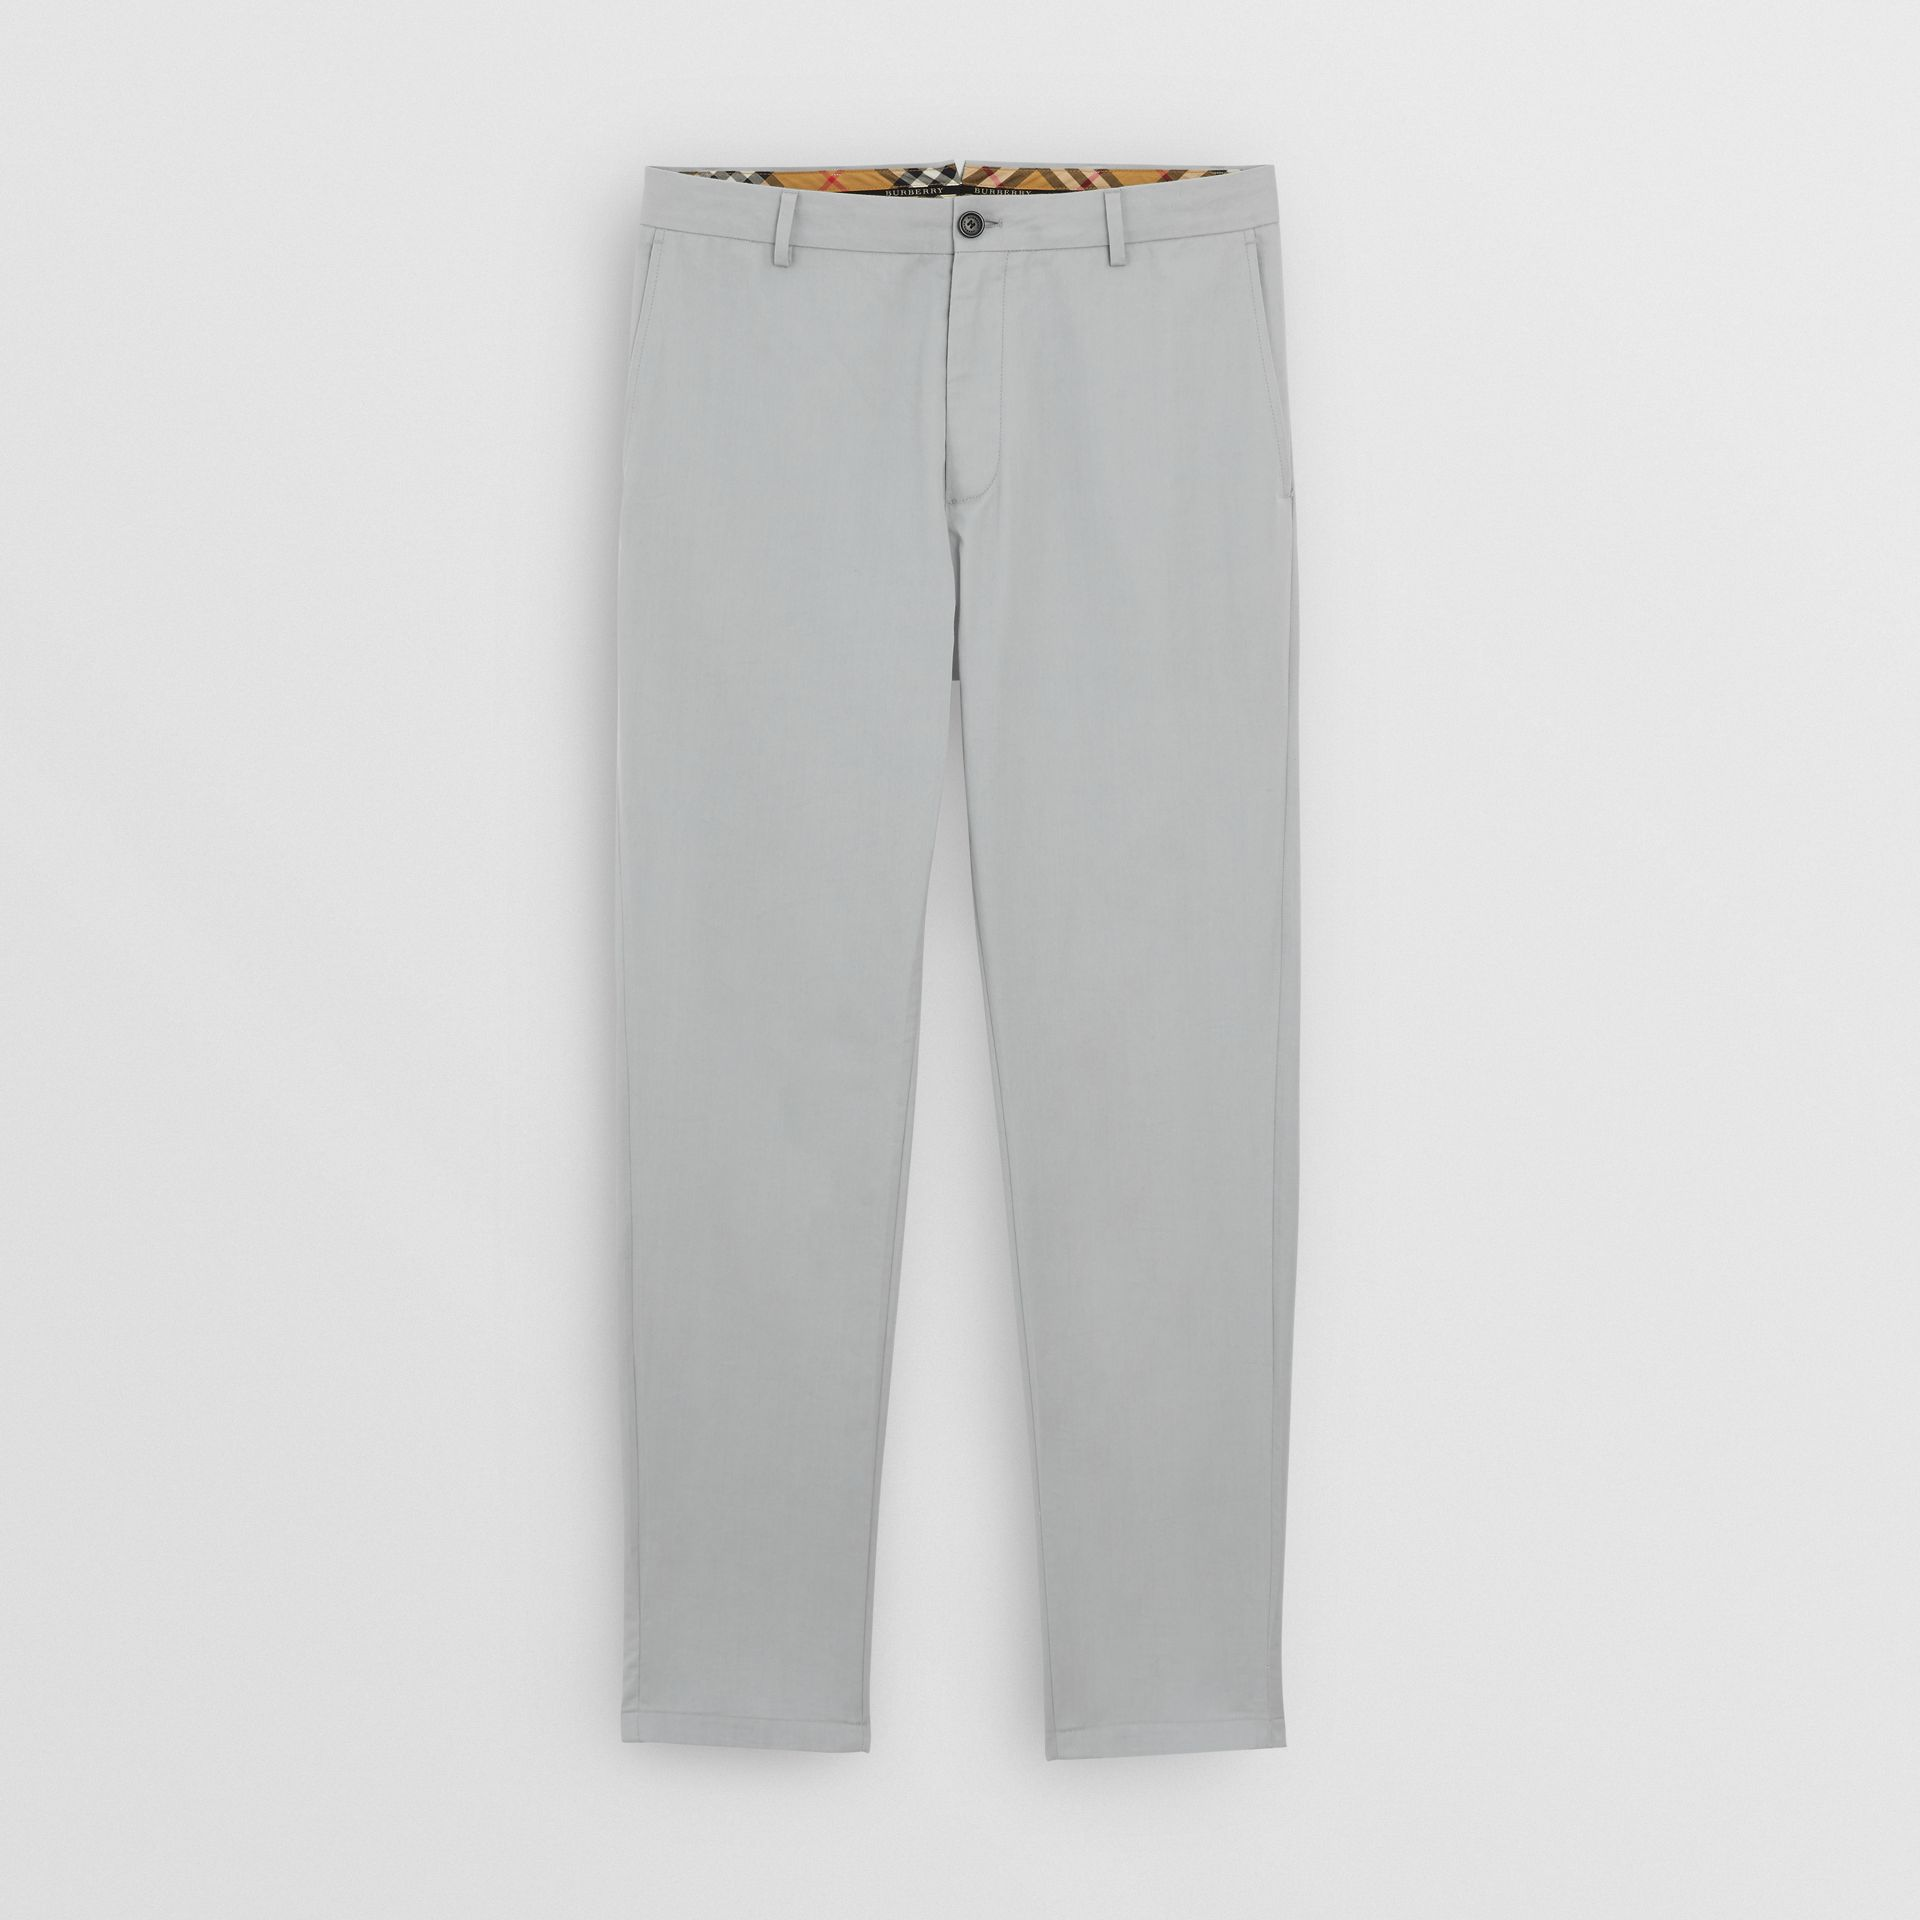 Slim Fit Cotton Chinos in Blue Grey - Men | Burberry United Kingdom - gallery image 3